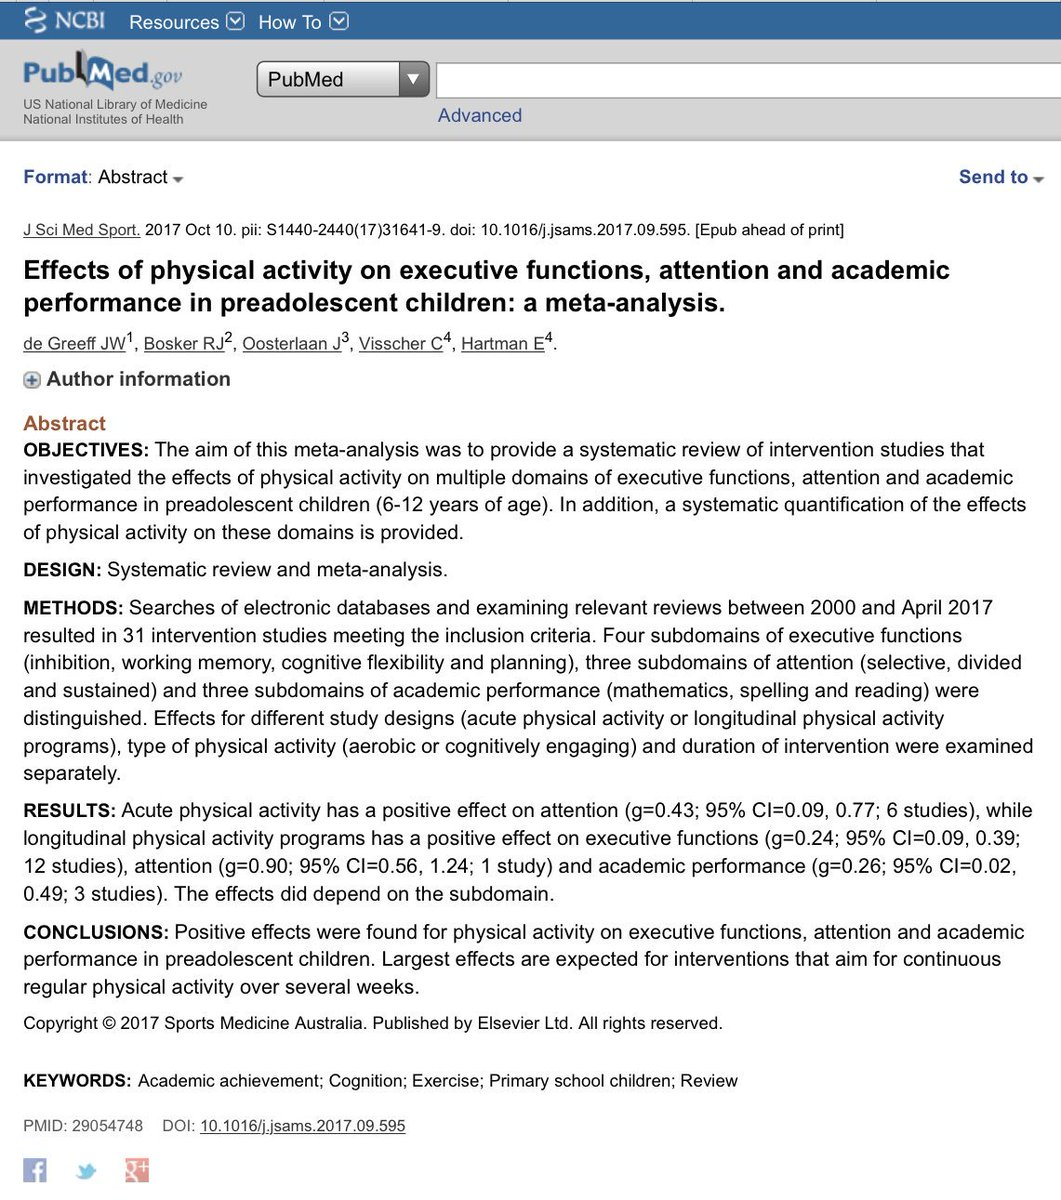 #Physicalactivity may have positive influence on #cognition and academic performance in prepubertal #children. #Meta-Analysis @exerciseworks  https://www. ncbi.nlm.nih.gov/pubmed/29054748  &nbsp;  <br>http://pic.twitter.com/XksGTJpWaD